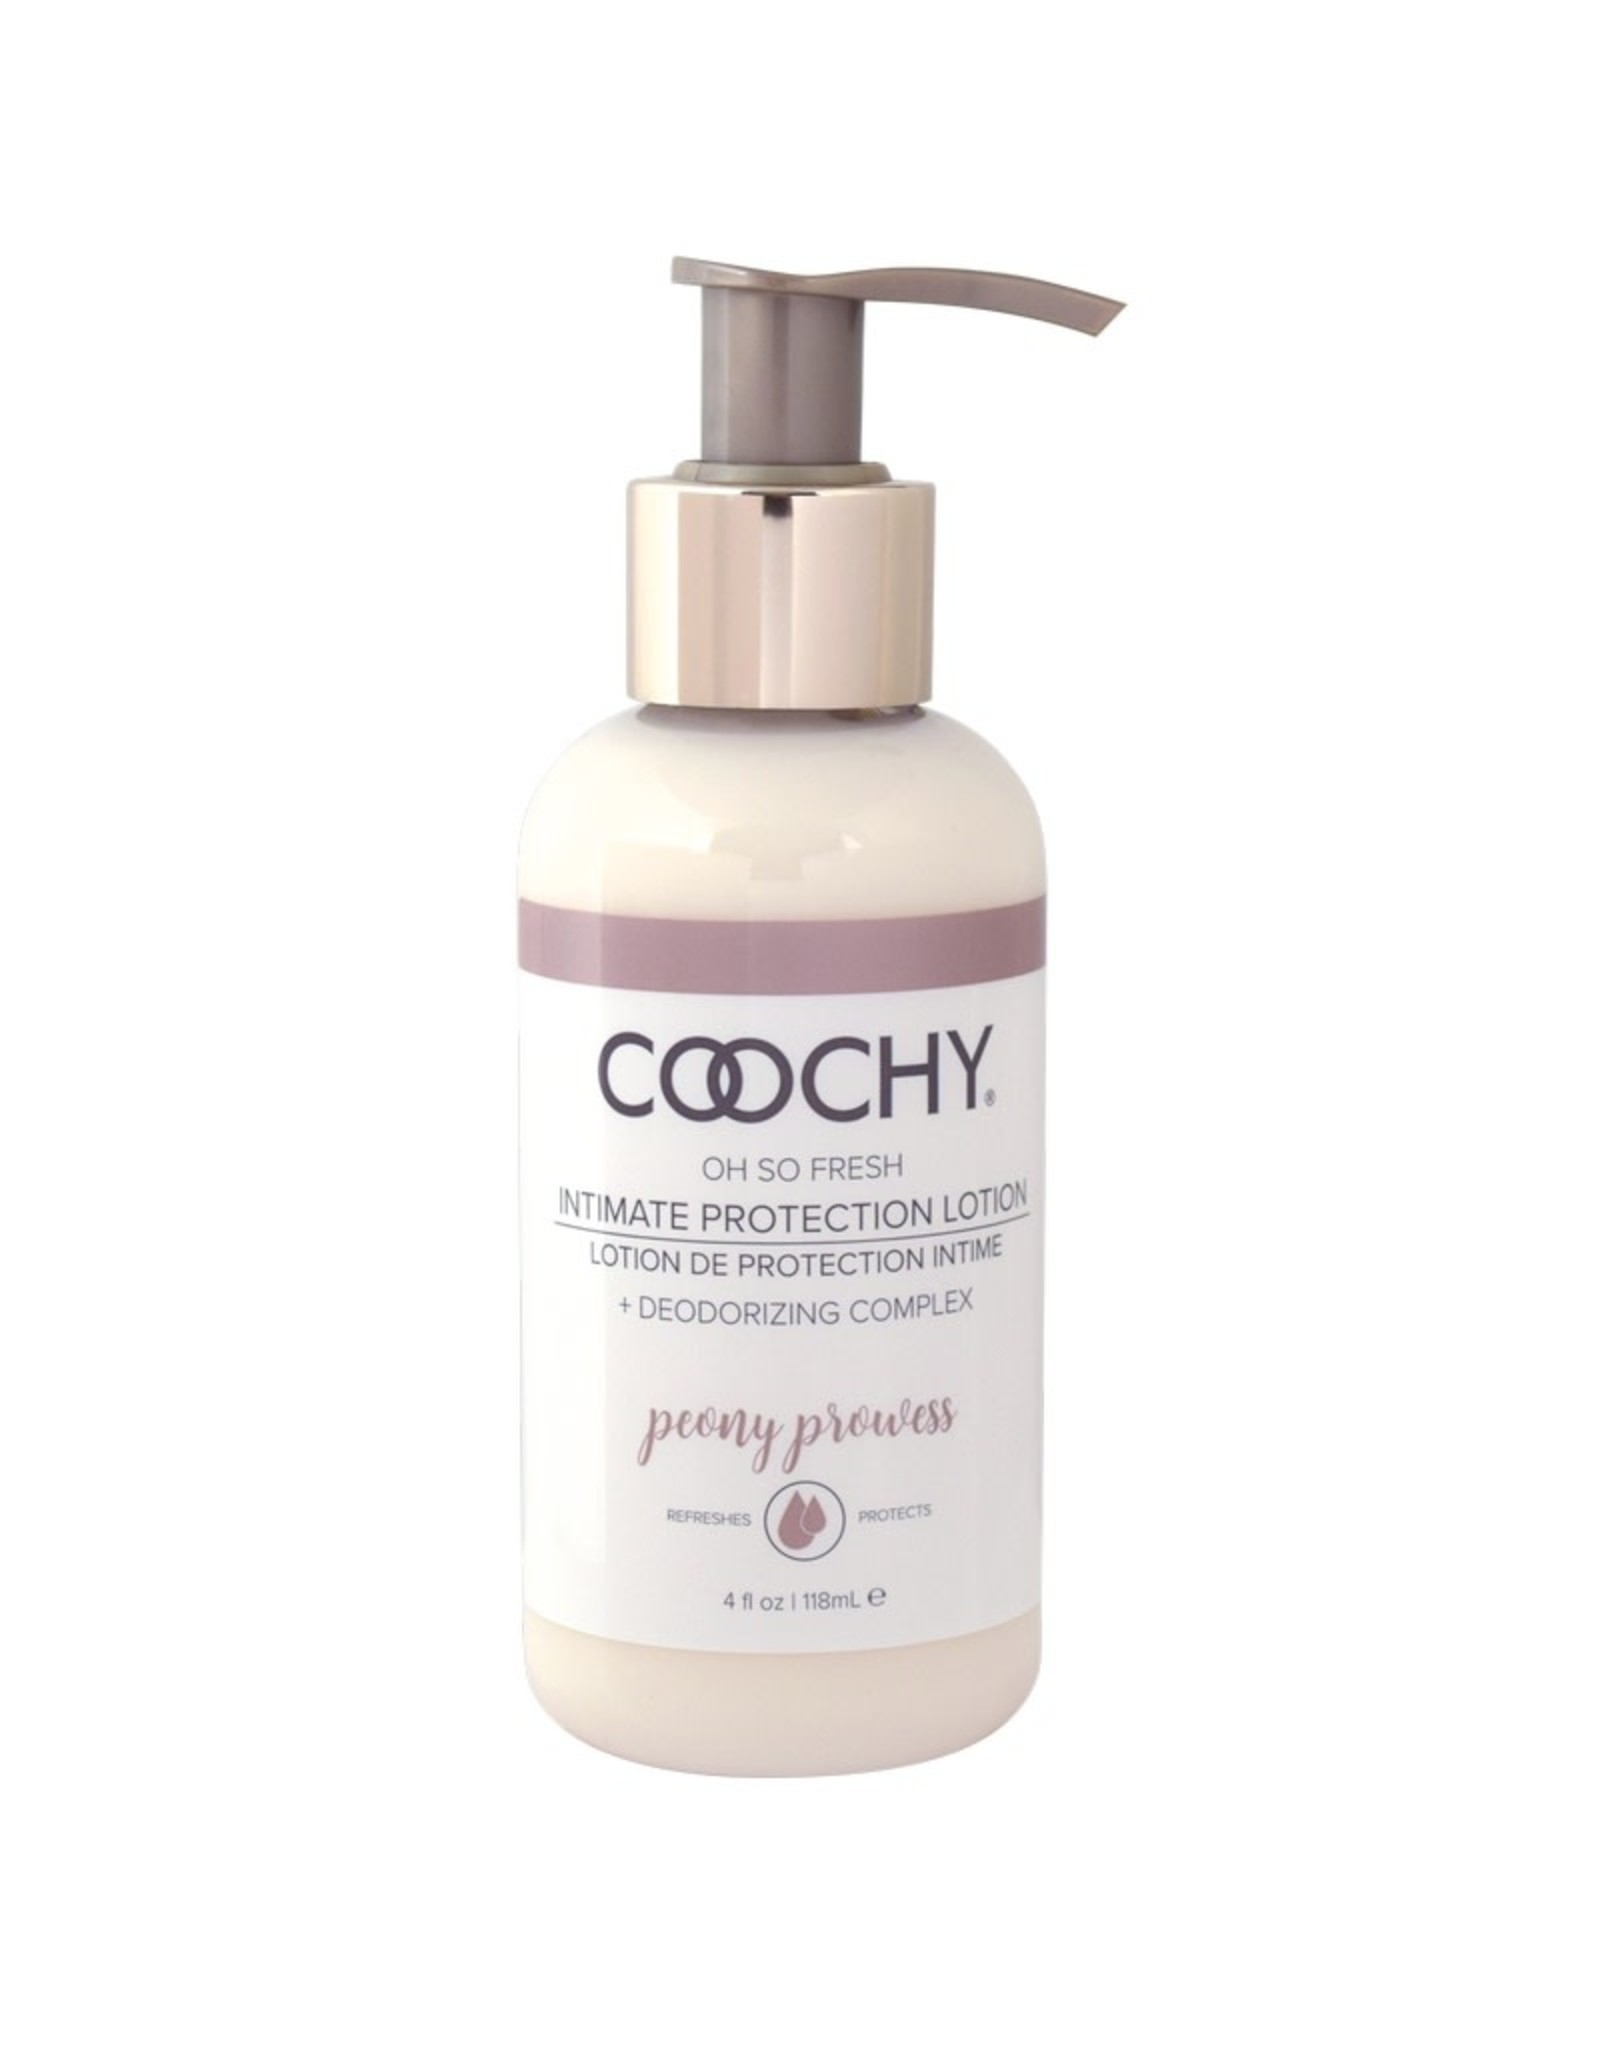 Classic Brands Coochy - Intimate Protection Lotion - Peony Prowess - 4oz